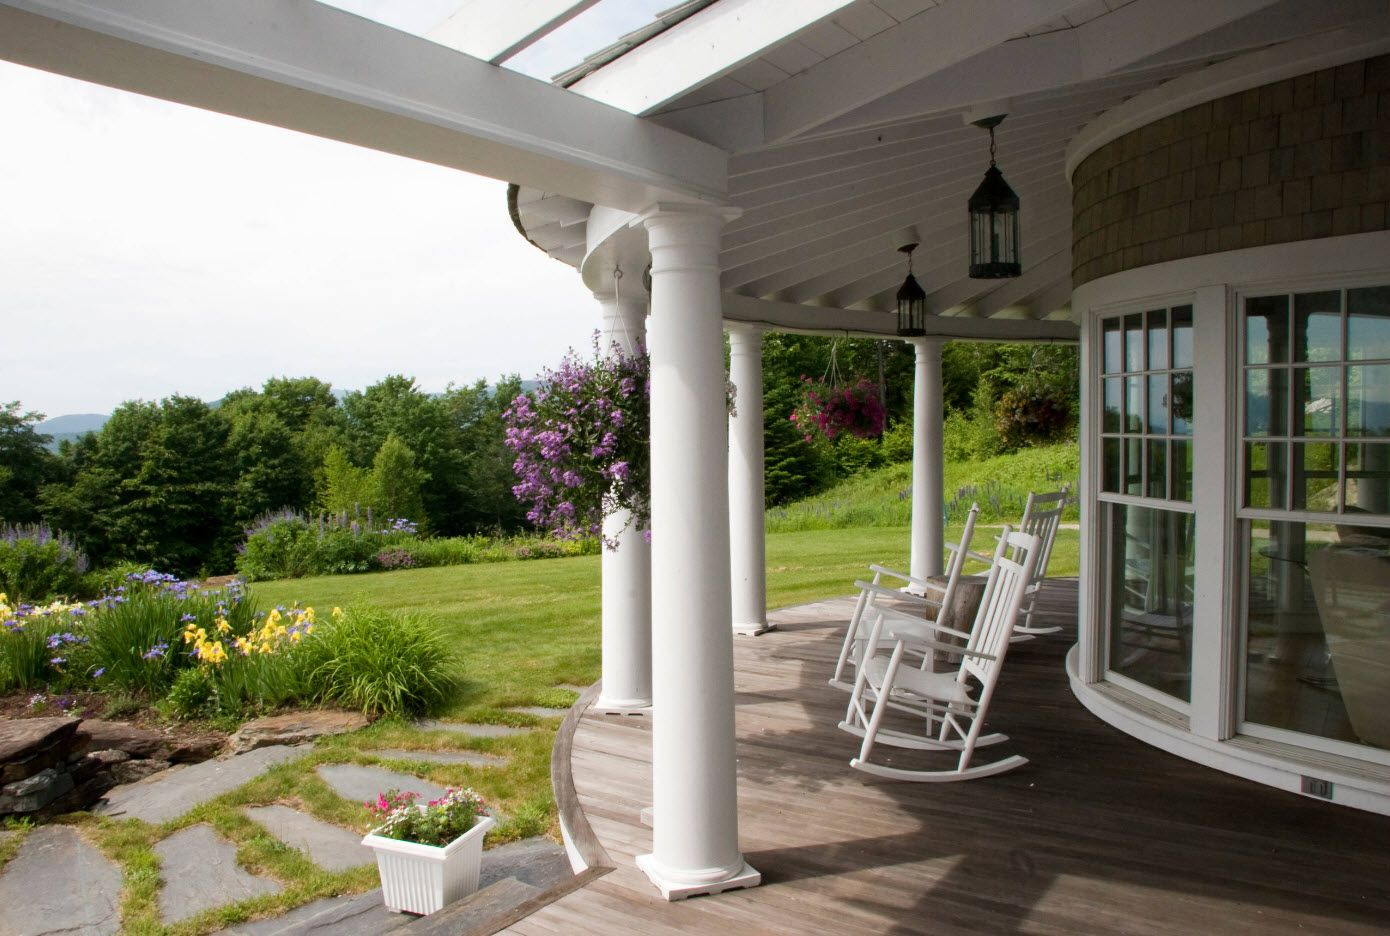 Country House Porch Decoration & Design Ideas. Semispheric vent at the open air